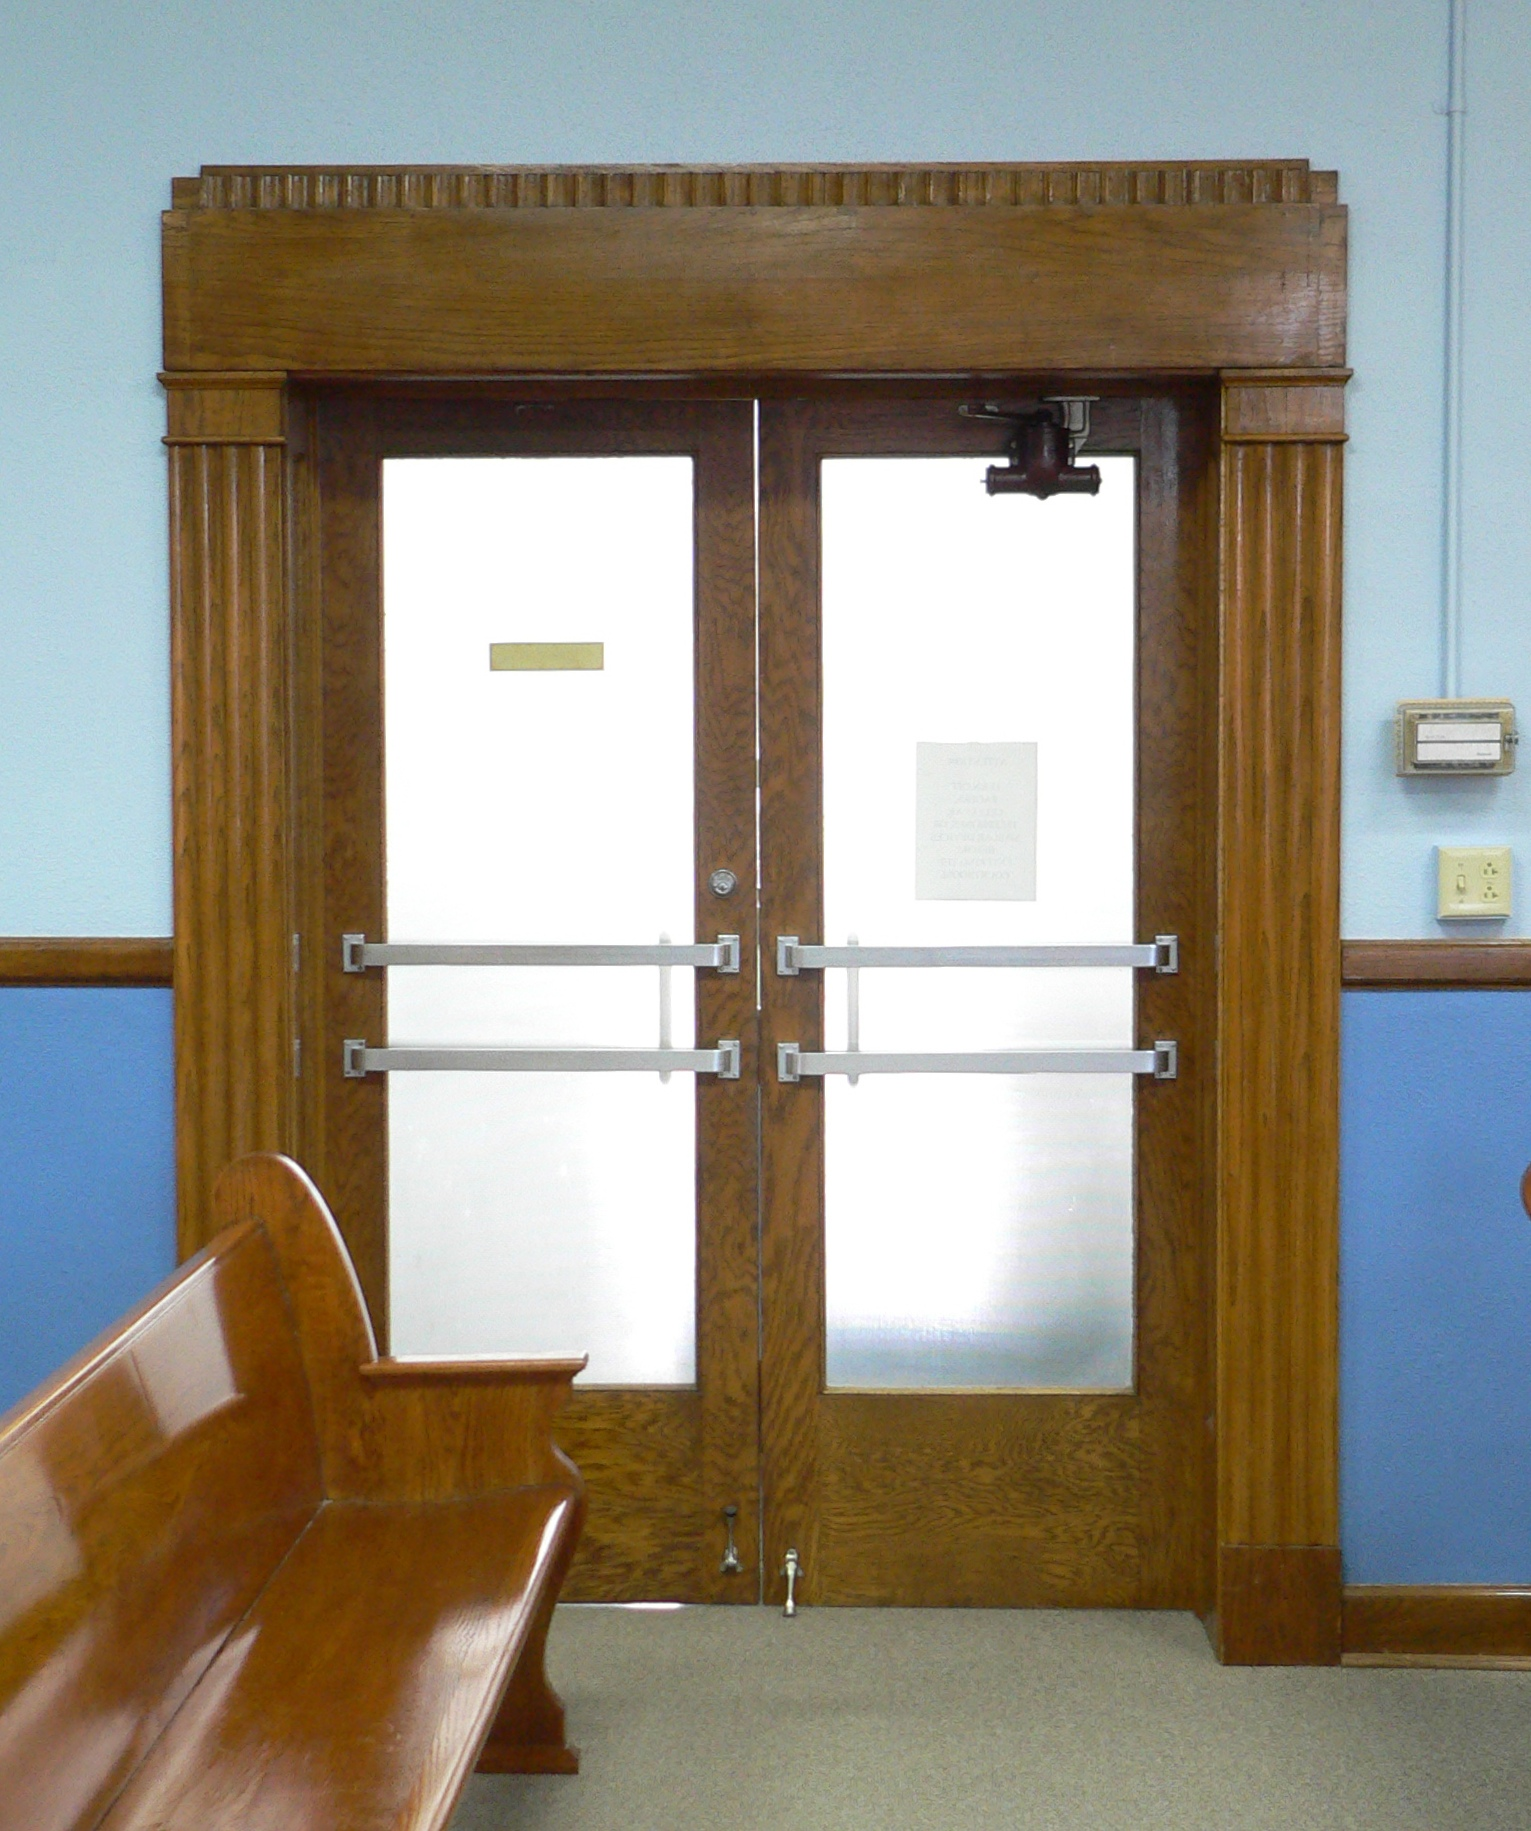 FileHamilton County Courthouse (Kansas) courtroom doors 2.JPG & File:Hamilton County Courthouse (Kansas) courtroom doors 2.JPG ...